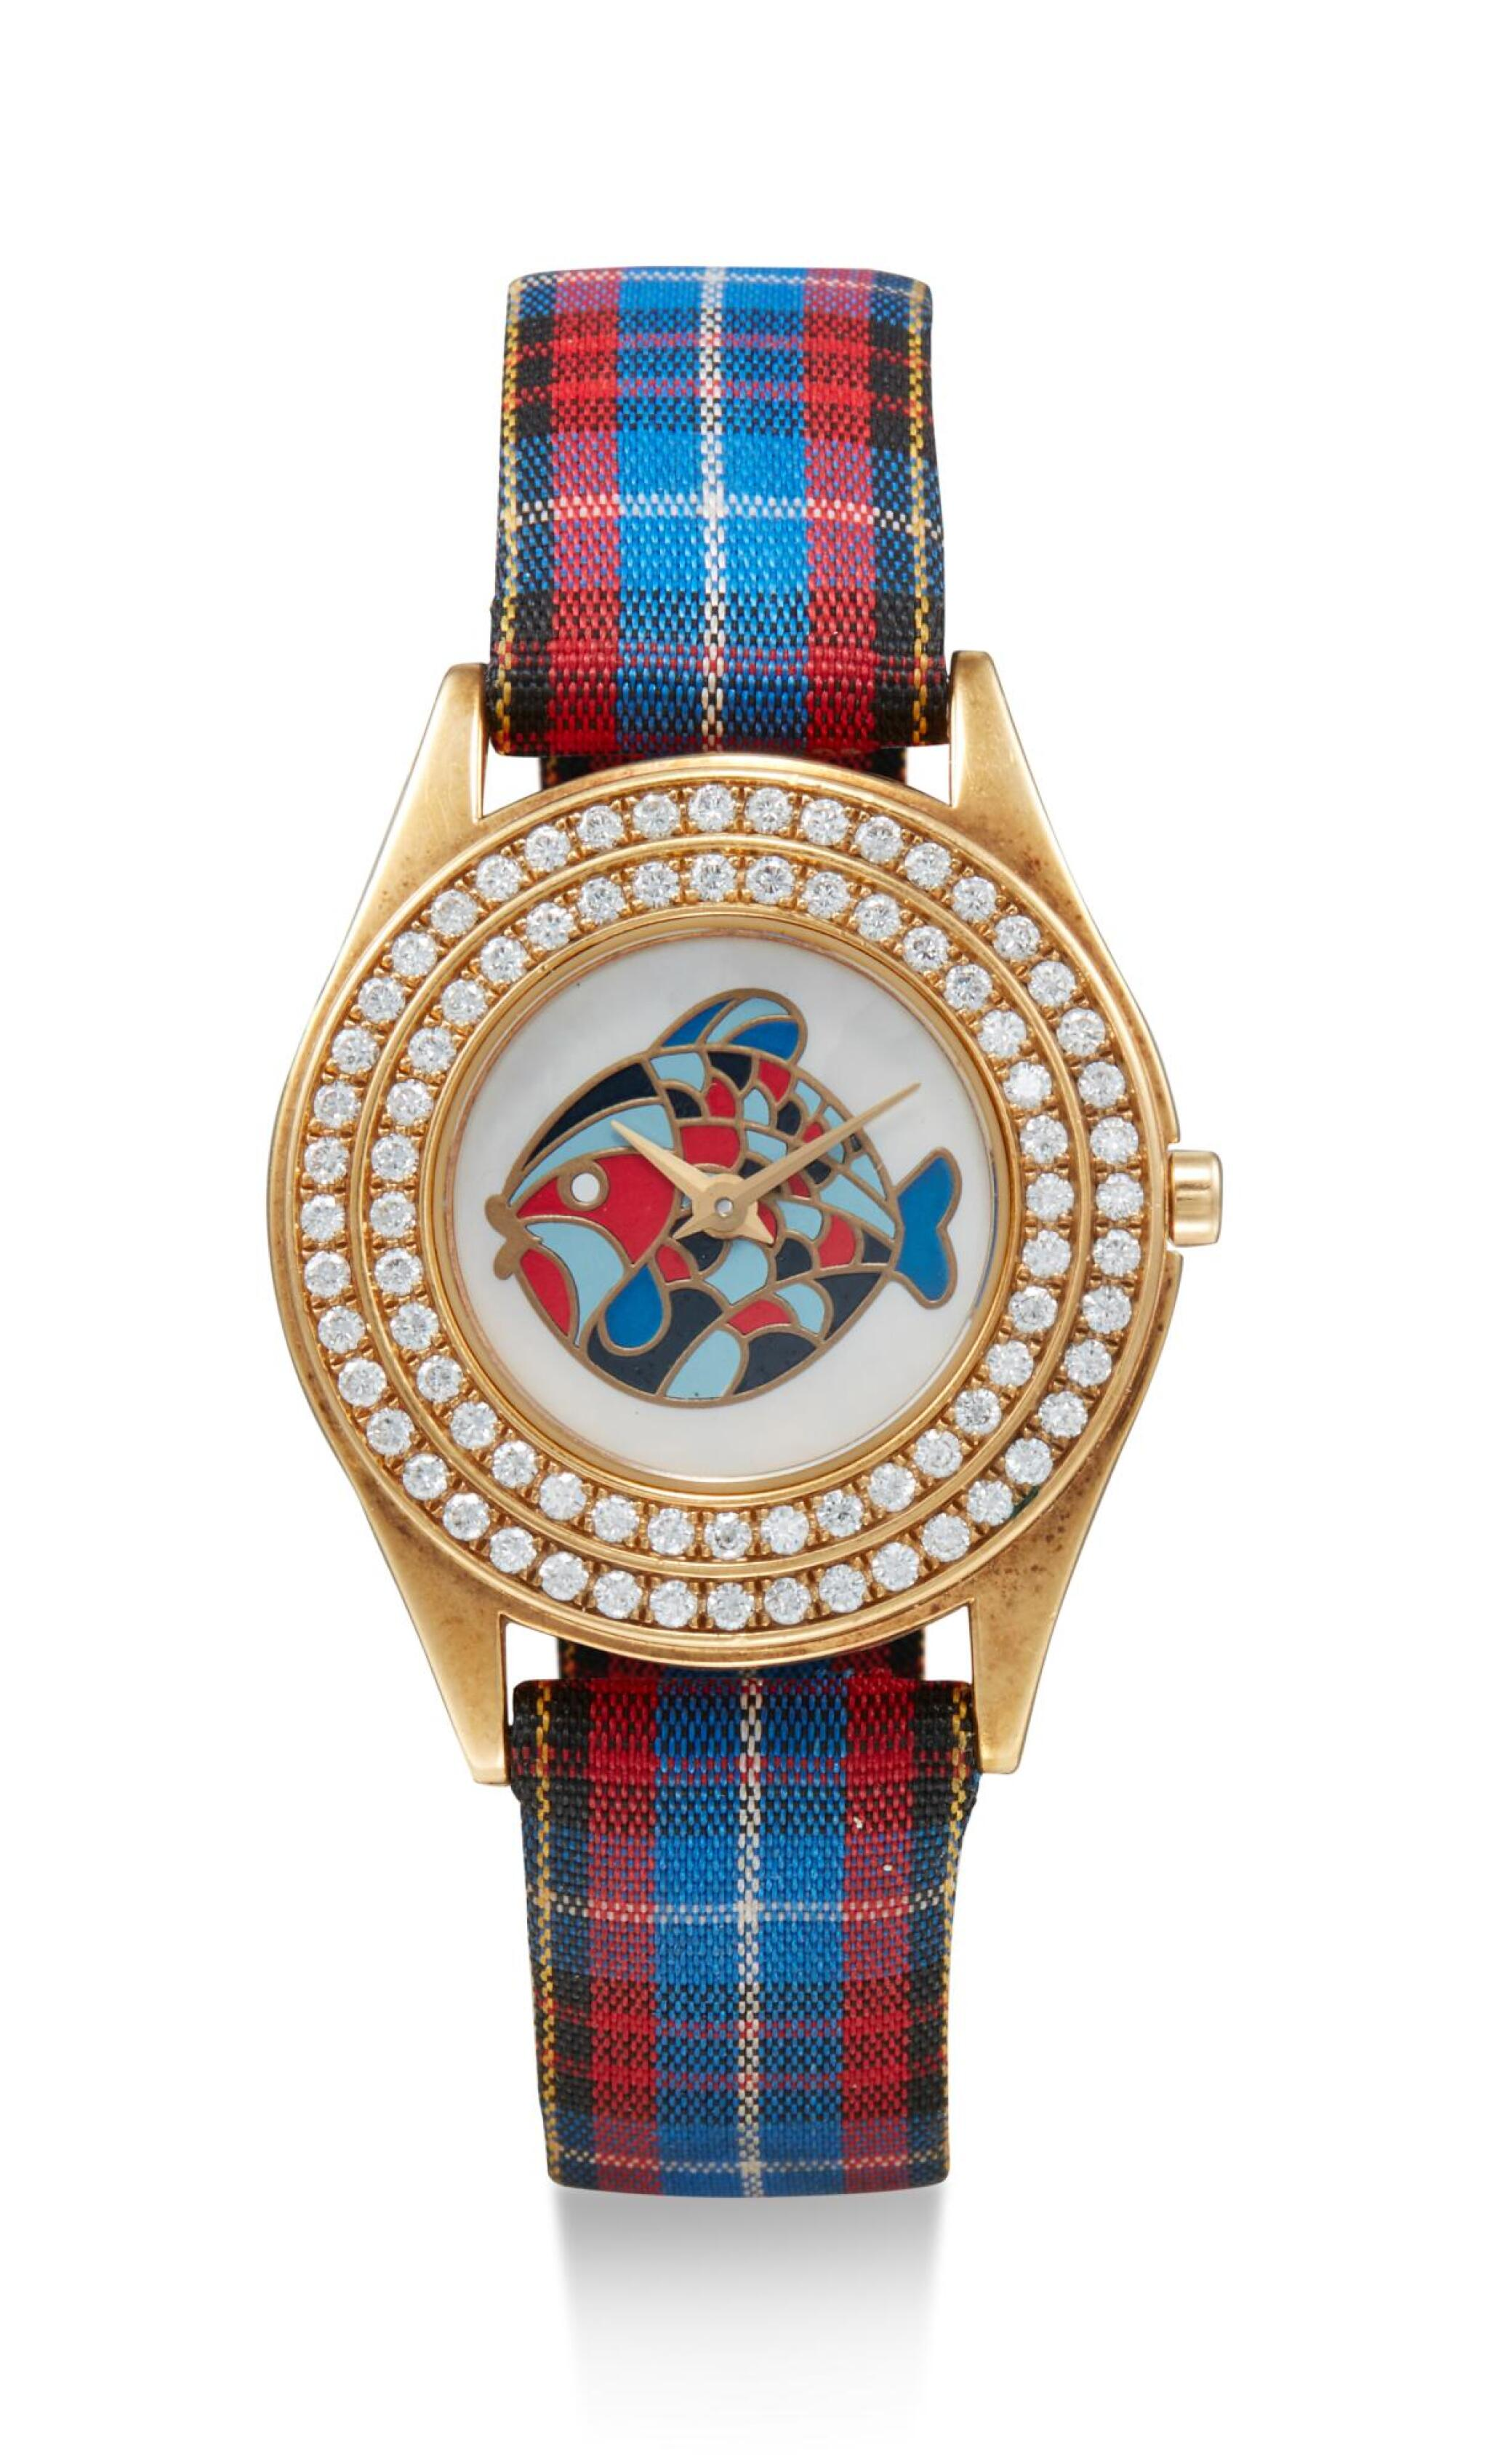 View full screen - View 1 of Lot 8079. MAUBOUSSIN  | A YELLOW GOLD AND DIAMOND-SET WRISTWATCH WITH MOTHER-OF-PEARL DIAL, CIRCA 1998.